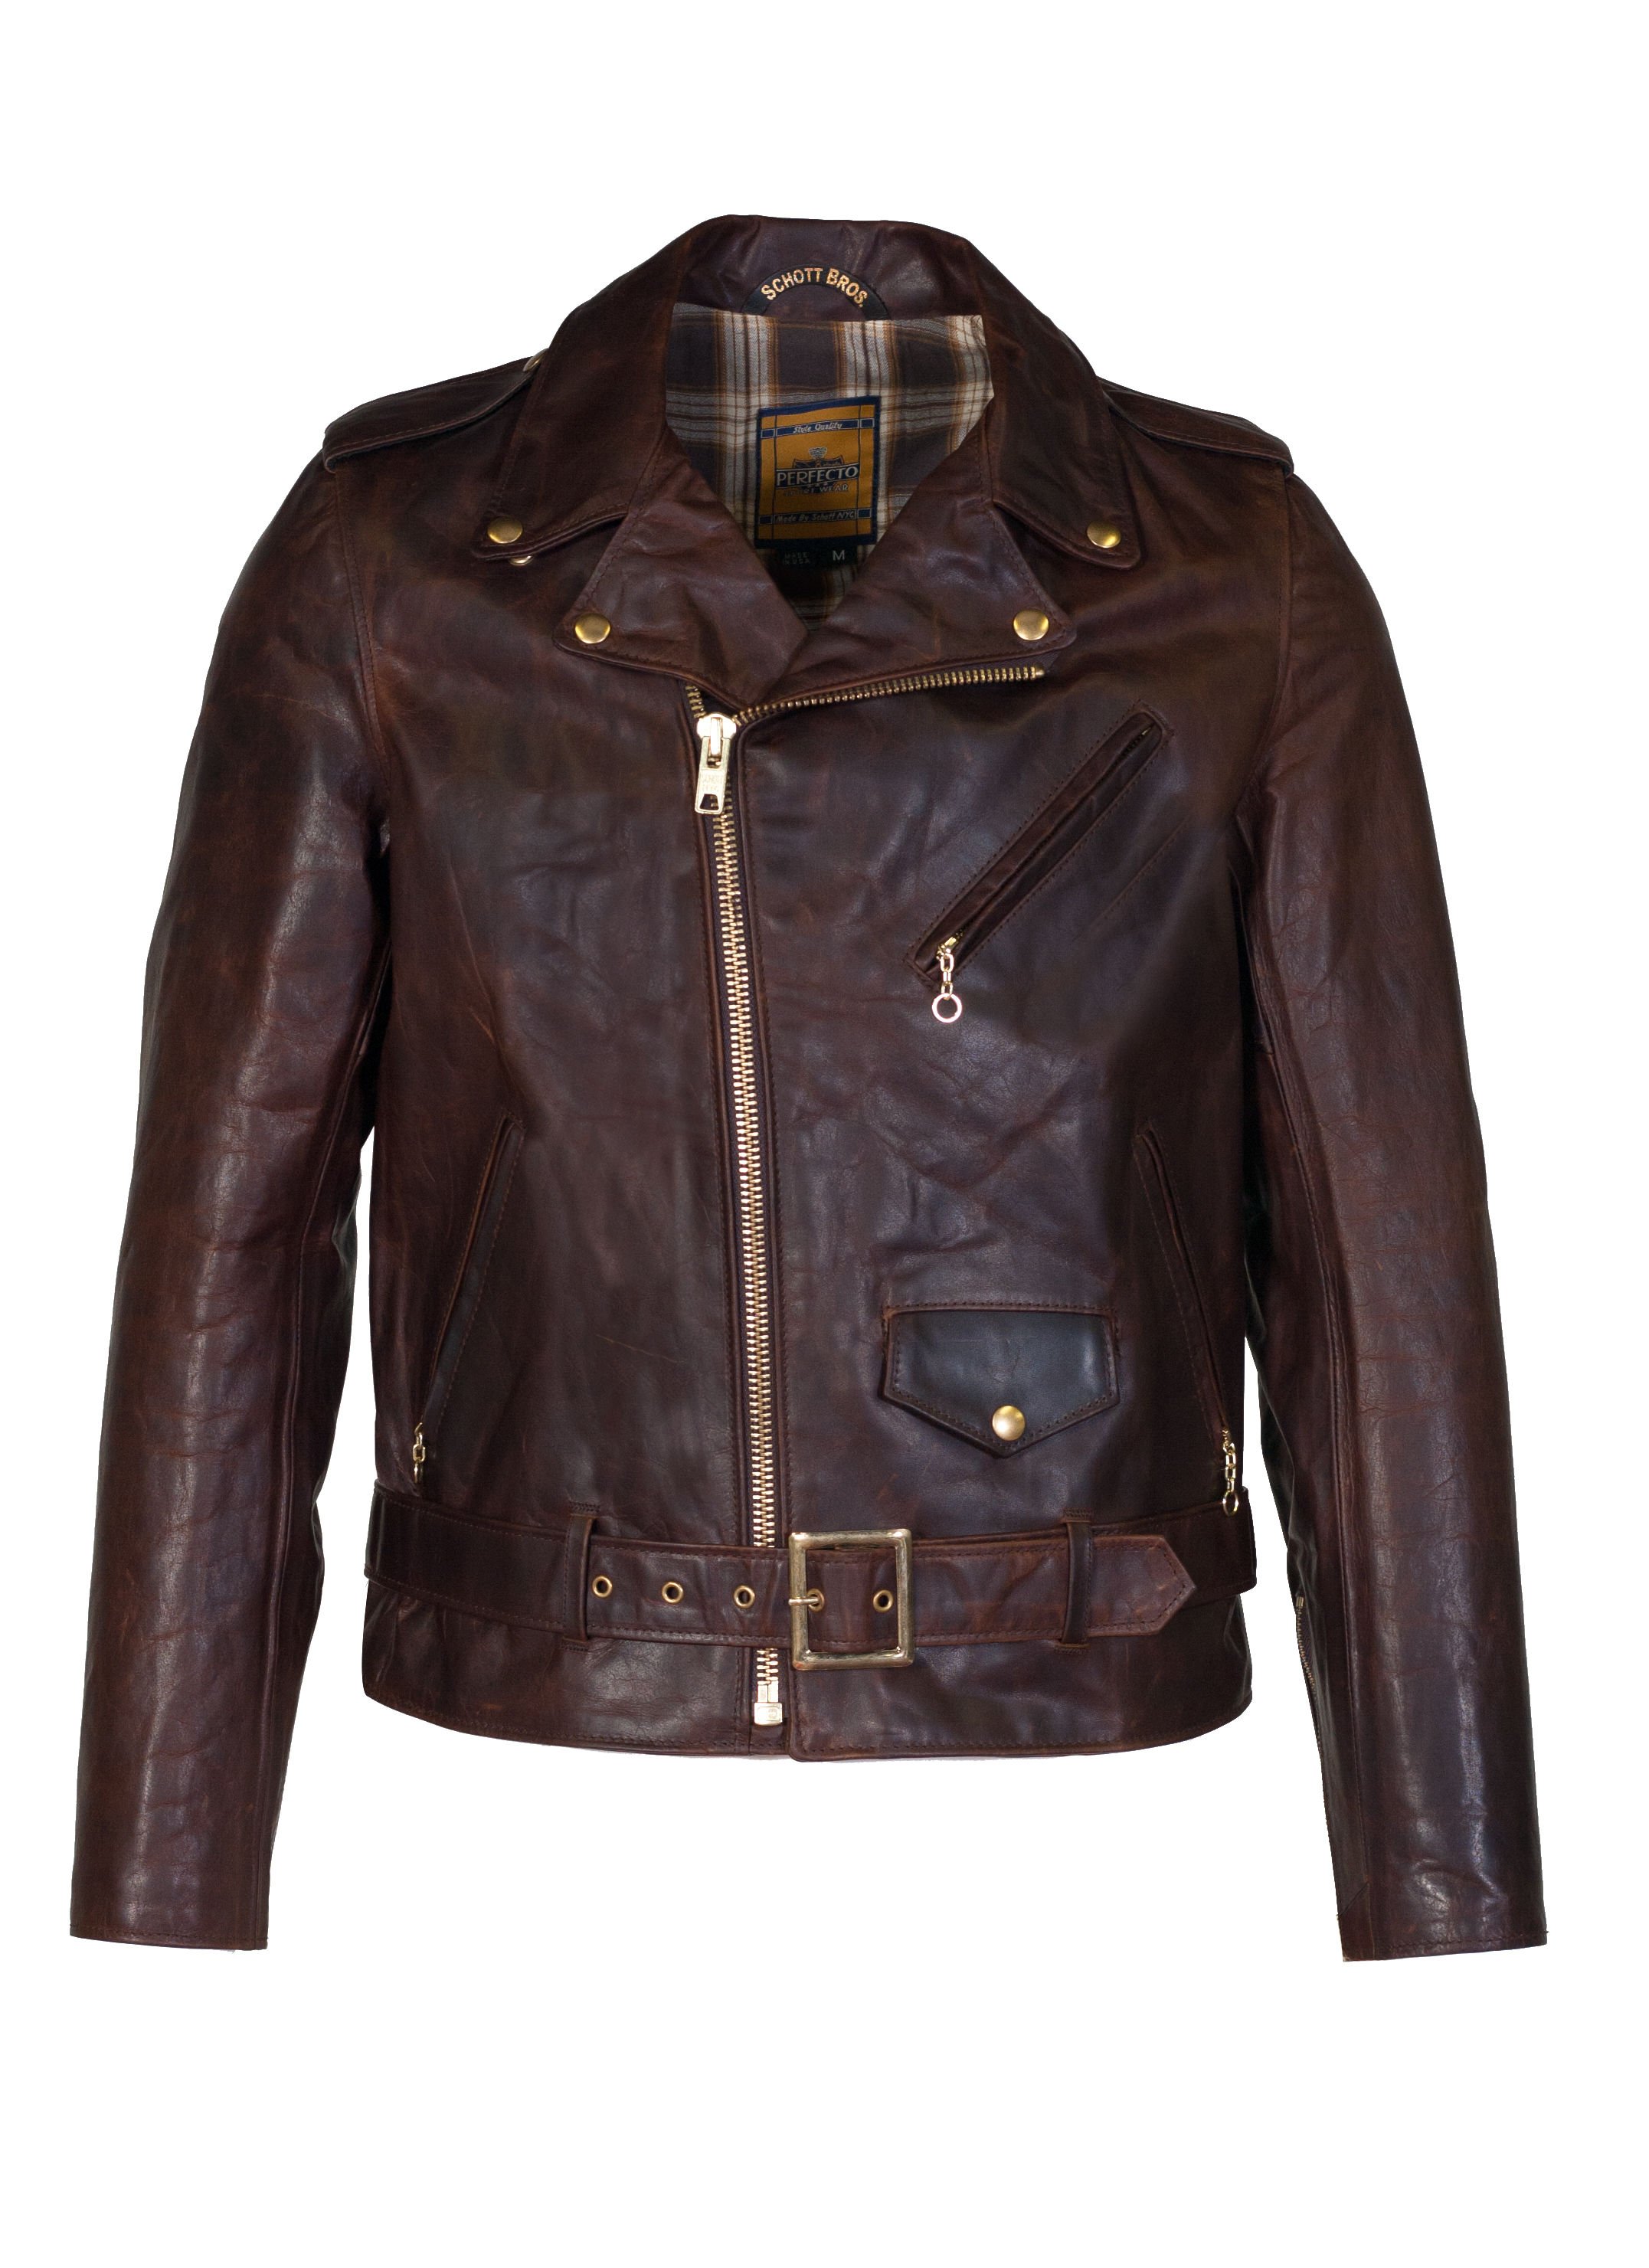 Schott N.Y.C. 619 Hand Oiled Lightweight Naked Perfecto® Motorcycle Jacket with Plaid Cotton Lining